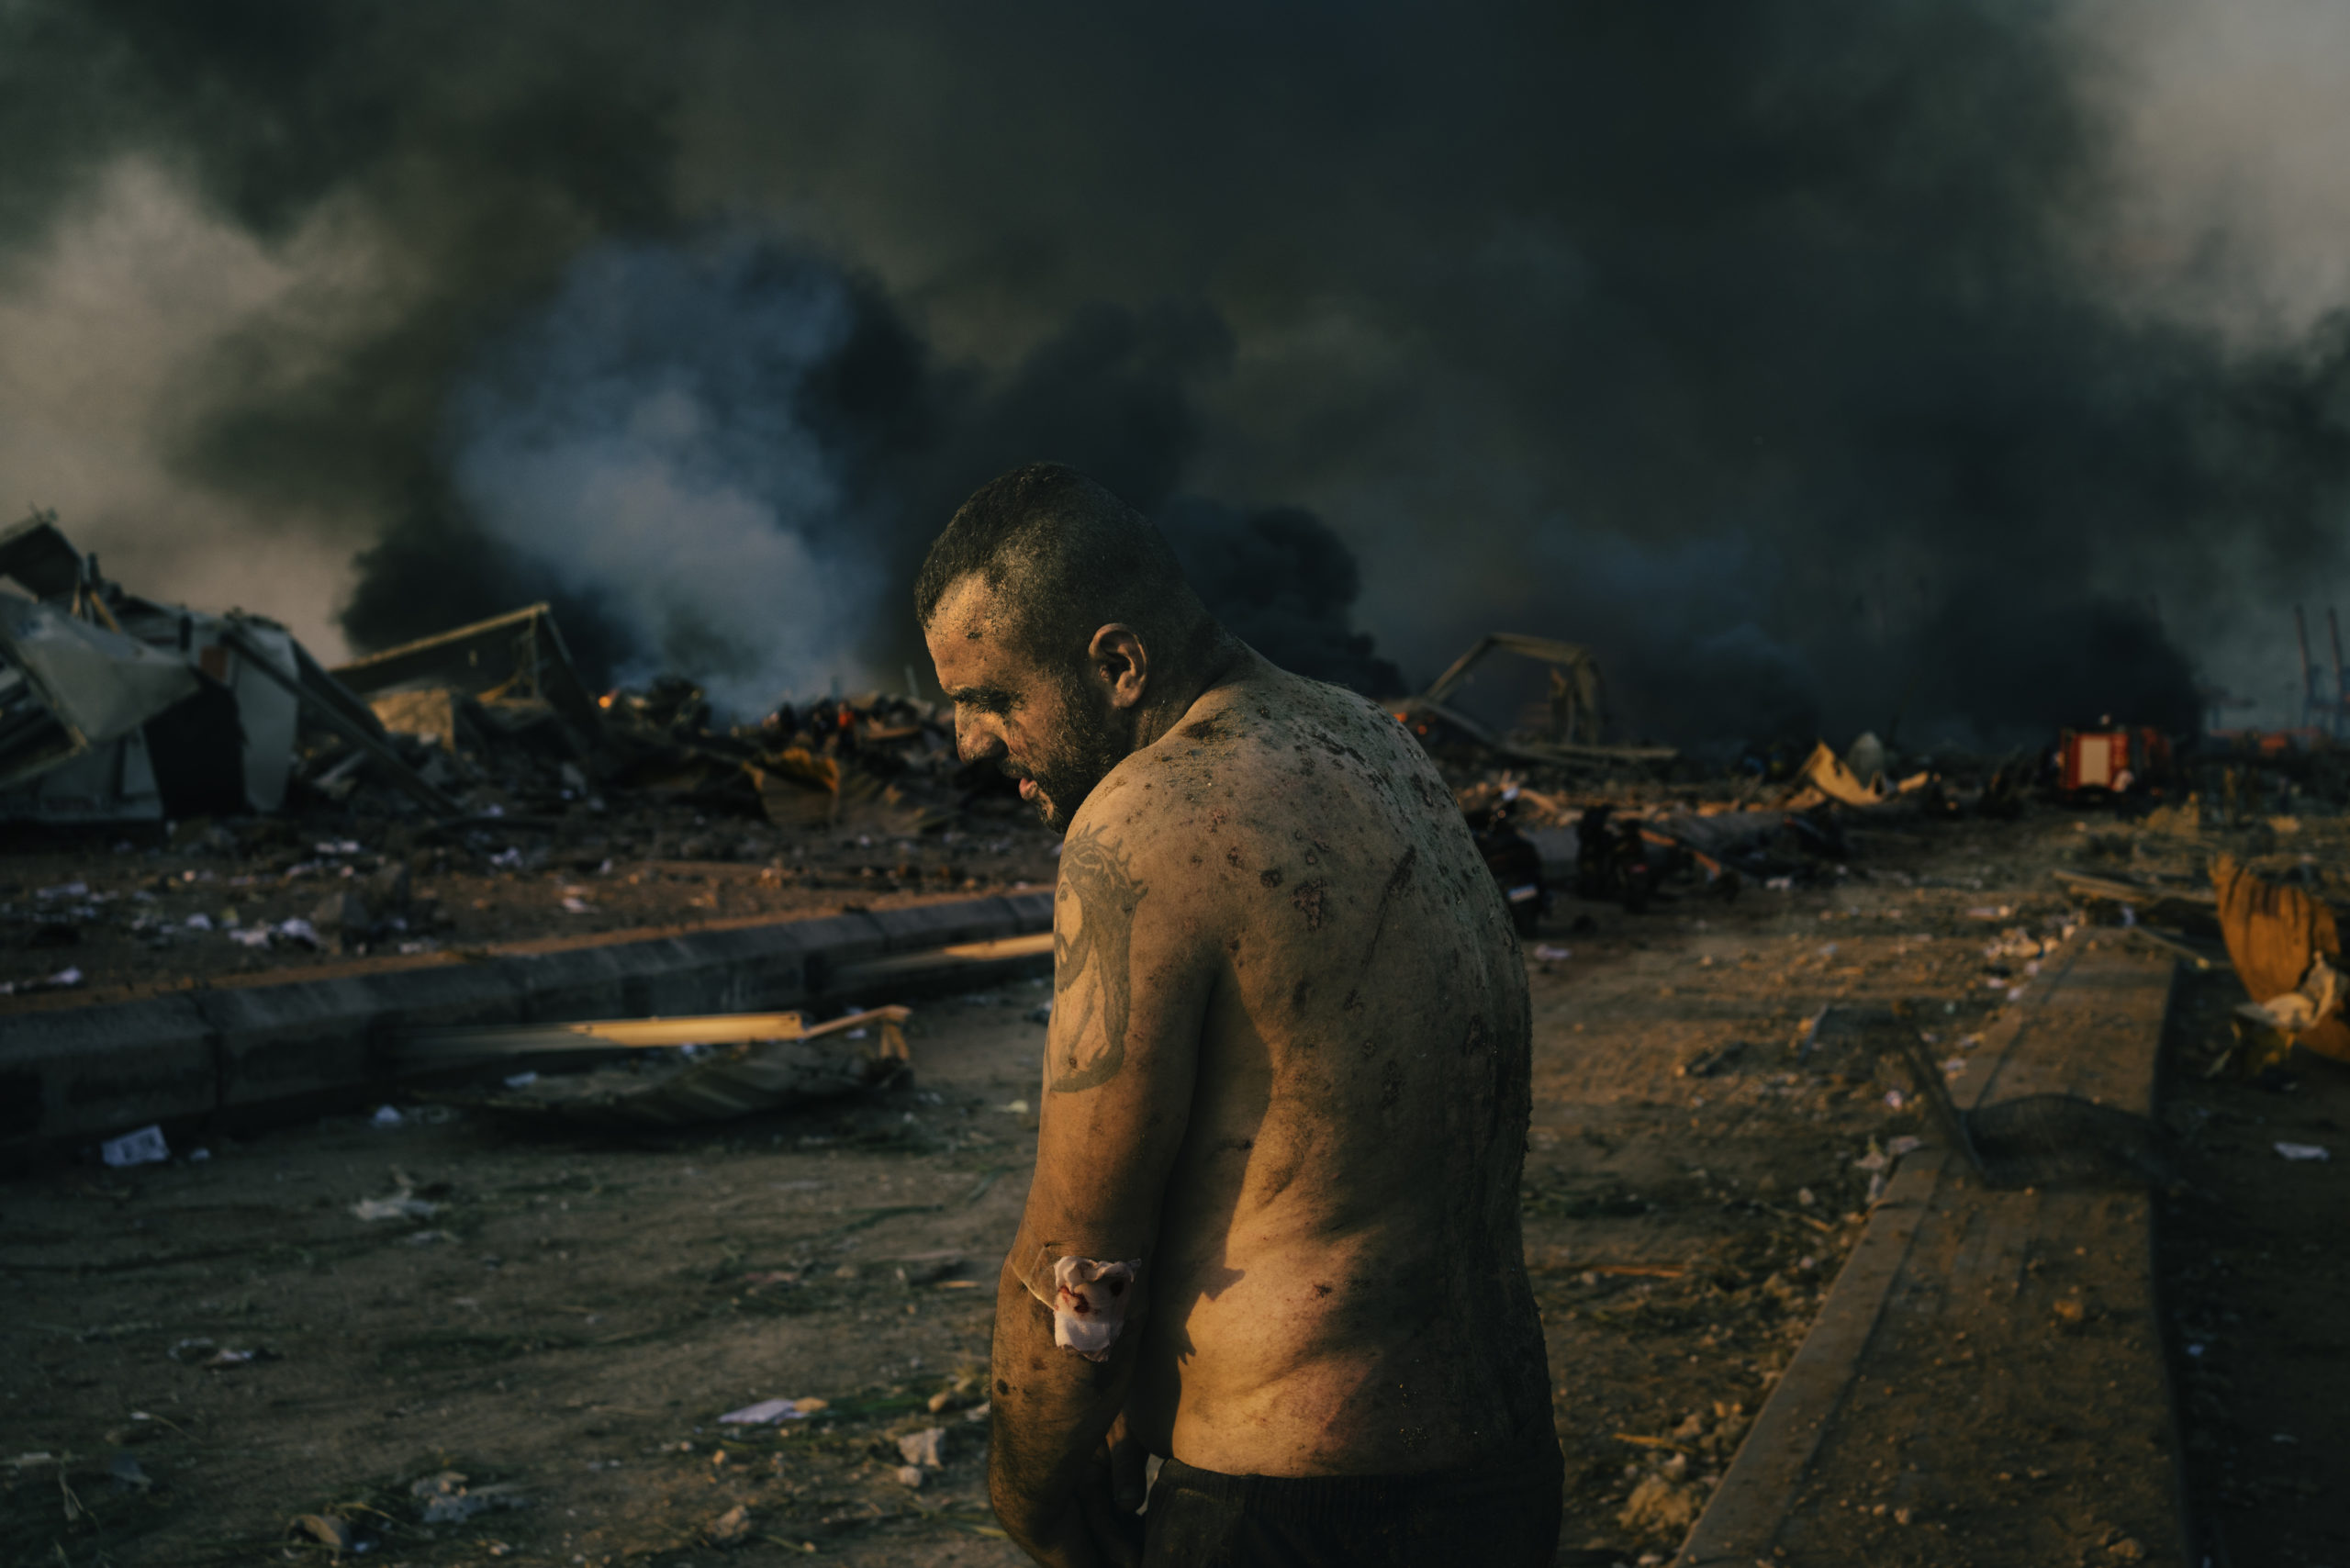 Injured Man After Port Explosion in Beirut © Lorenzo Tugnoli, Italy, Contrasto for The Washington Post